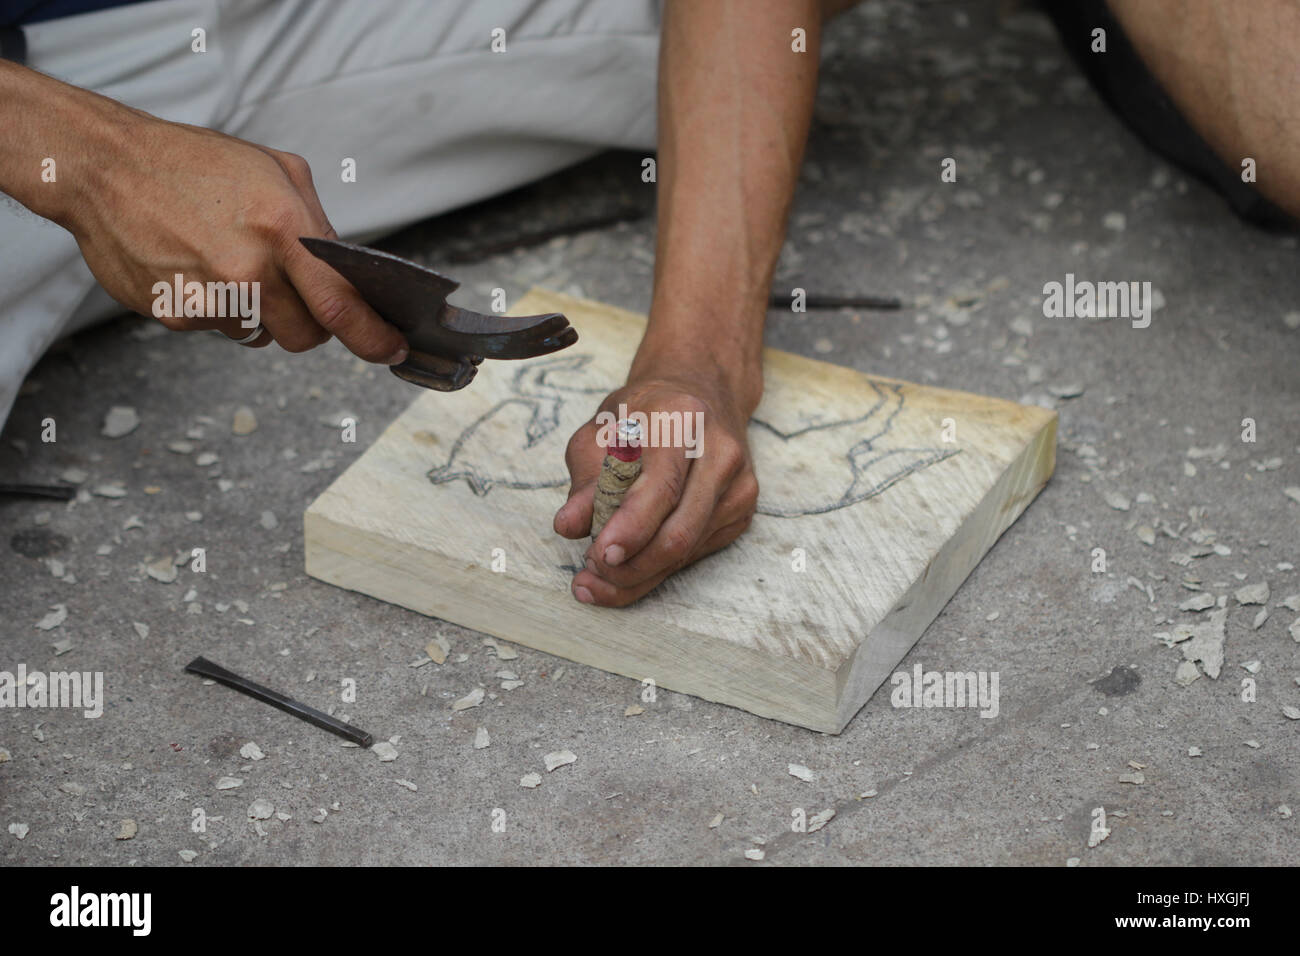 Hands of a man who is craving and working on a wooden plate.making an accessory  he could sell in market hand crafting - Stock Image